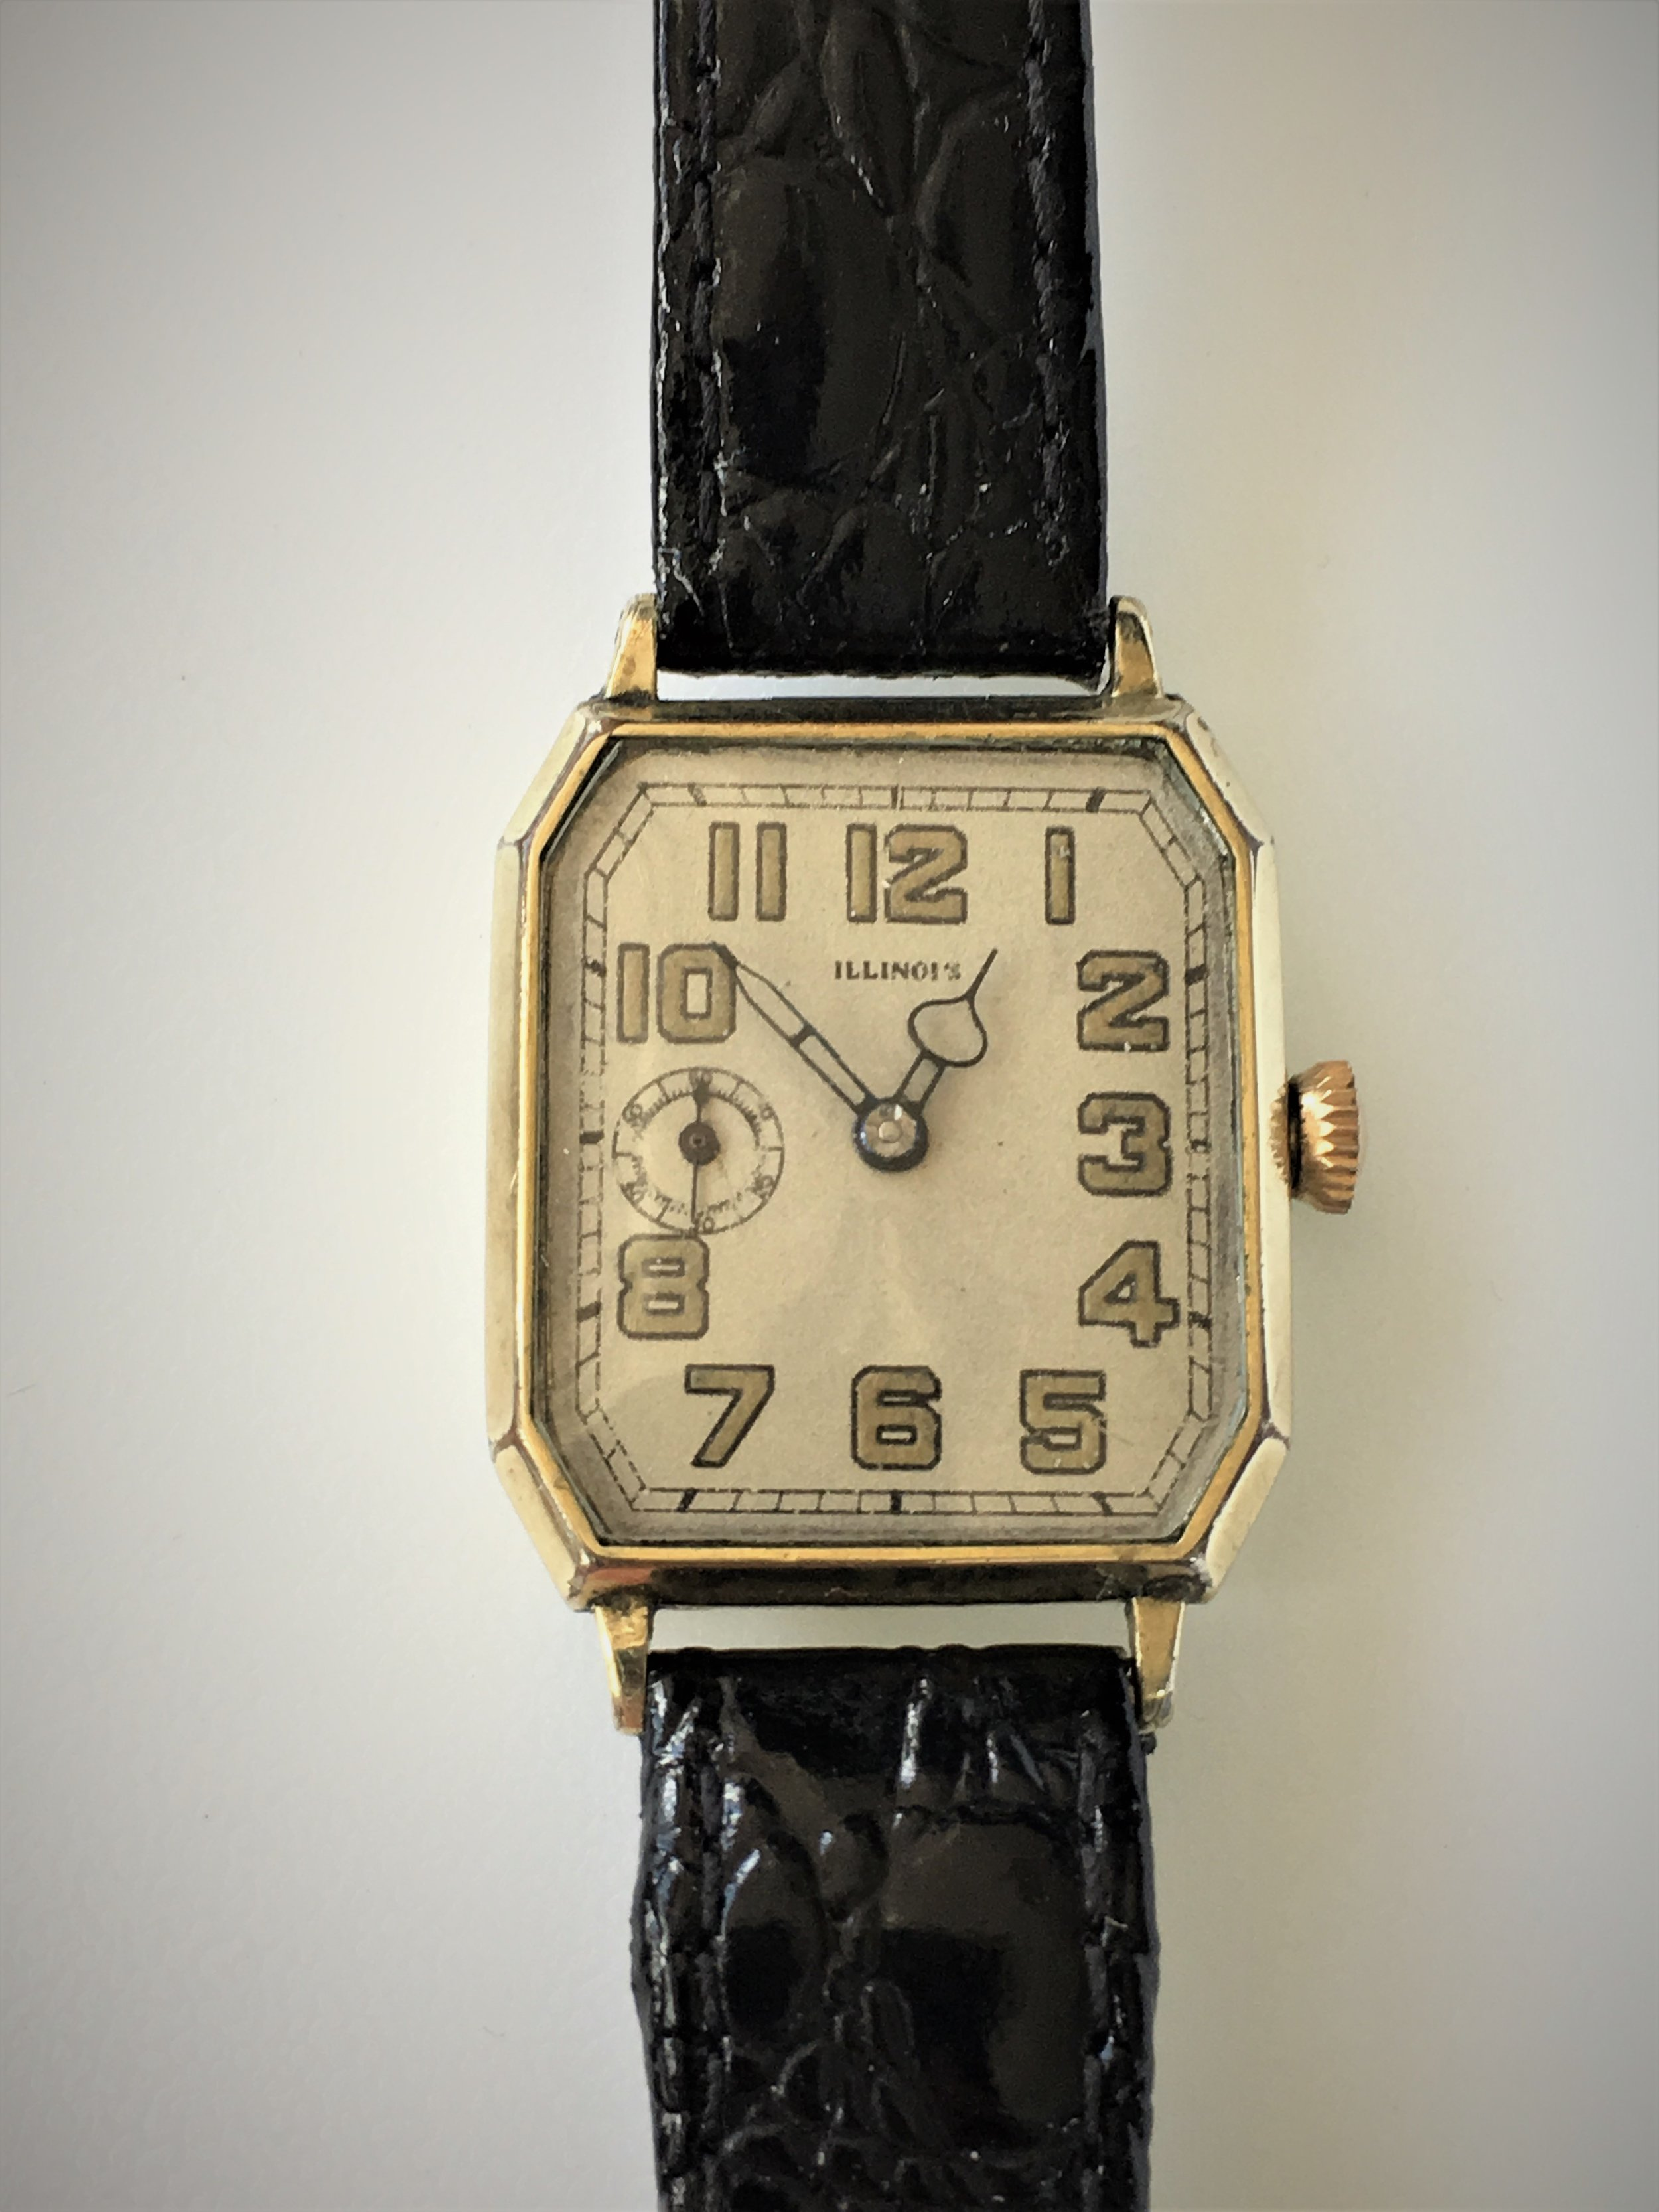 illinois. Tampa jewelry store watch repair